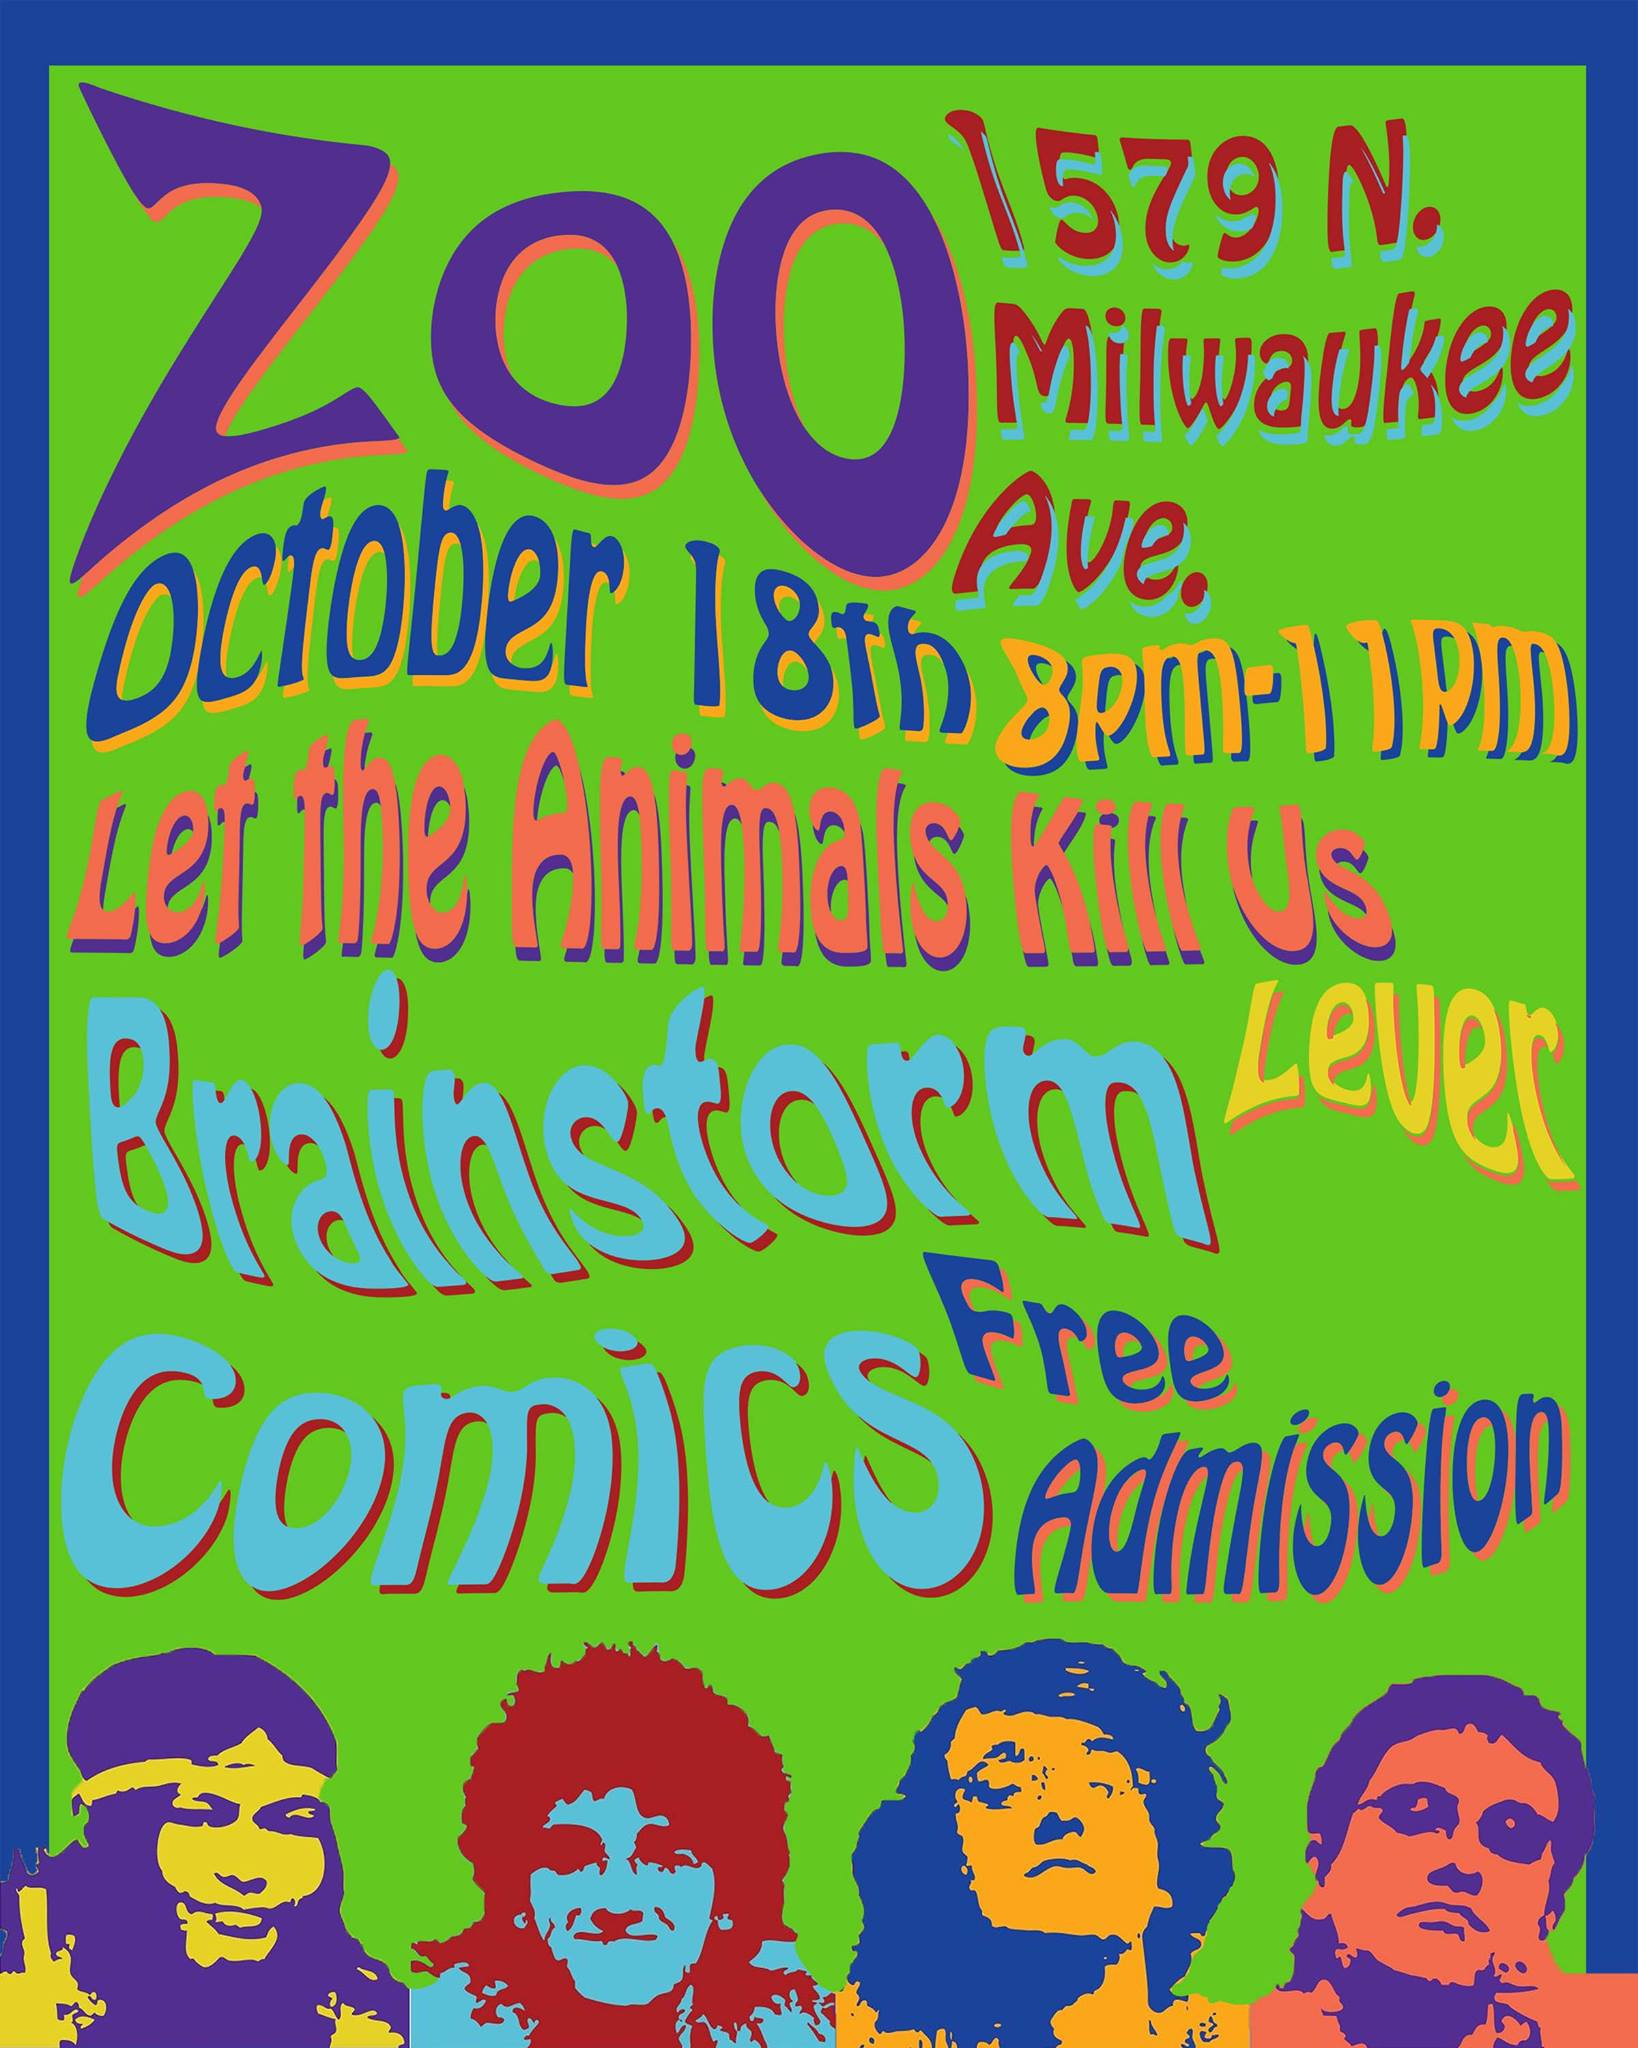 10/18/13 @ Brainstorm COMICS